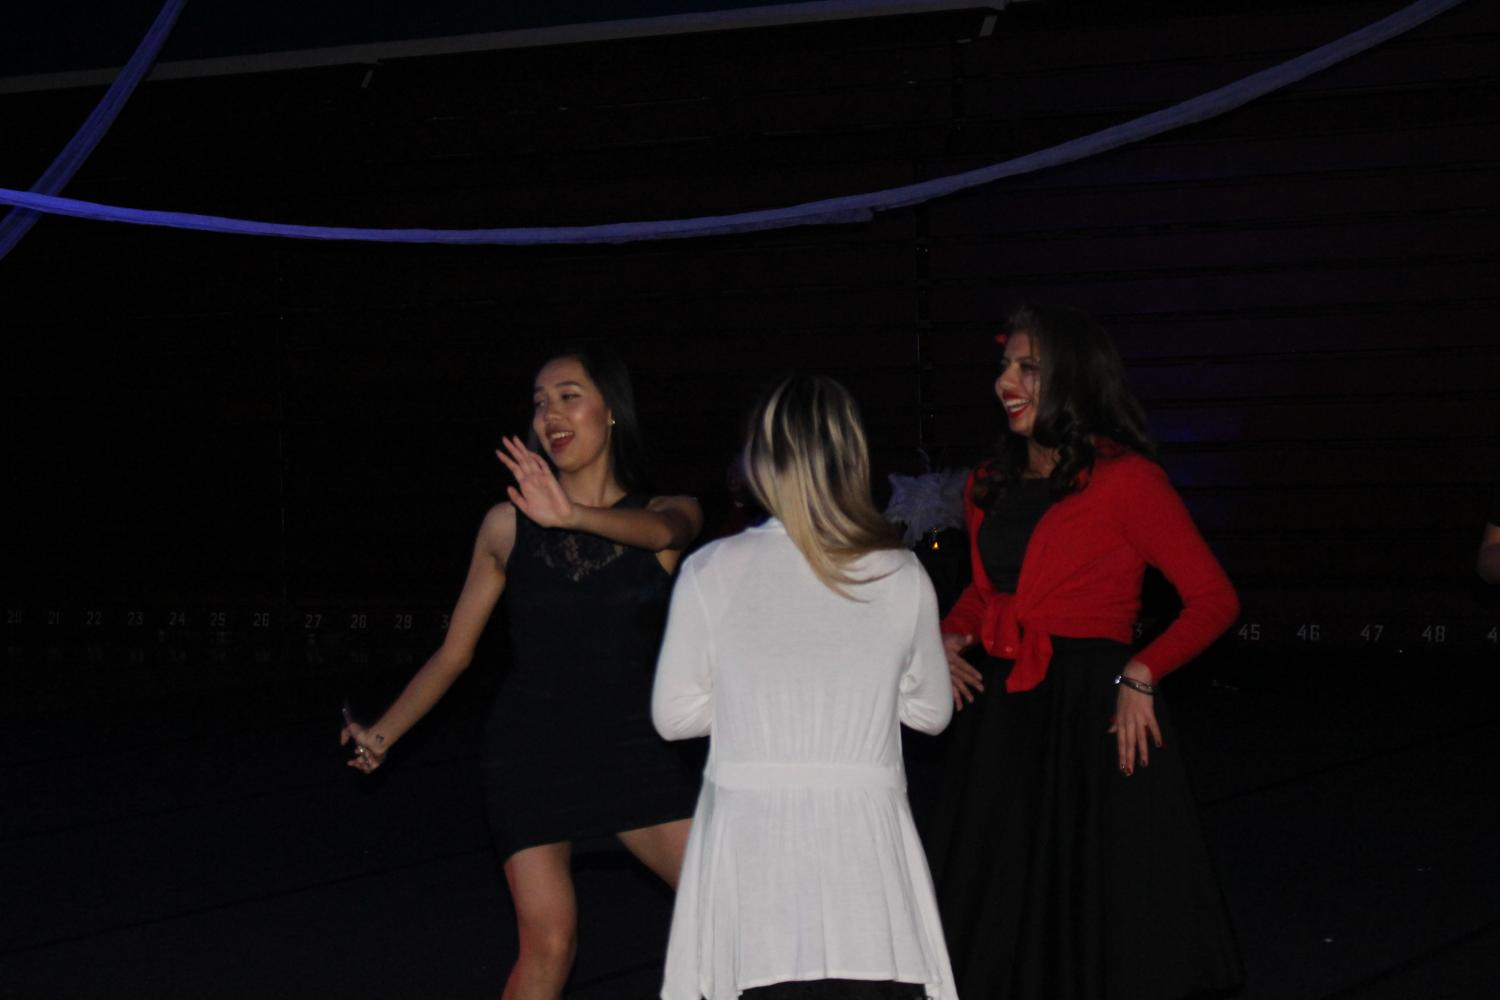 Sophomore+Rachel+Wang+dances+to+the+event%E2%80%99s+lively+music.